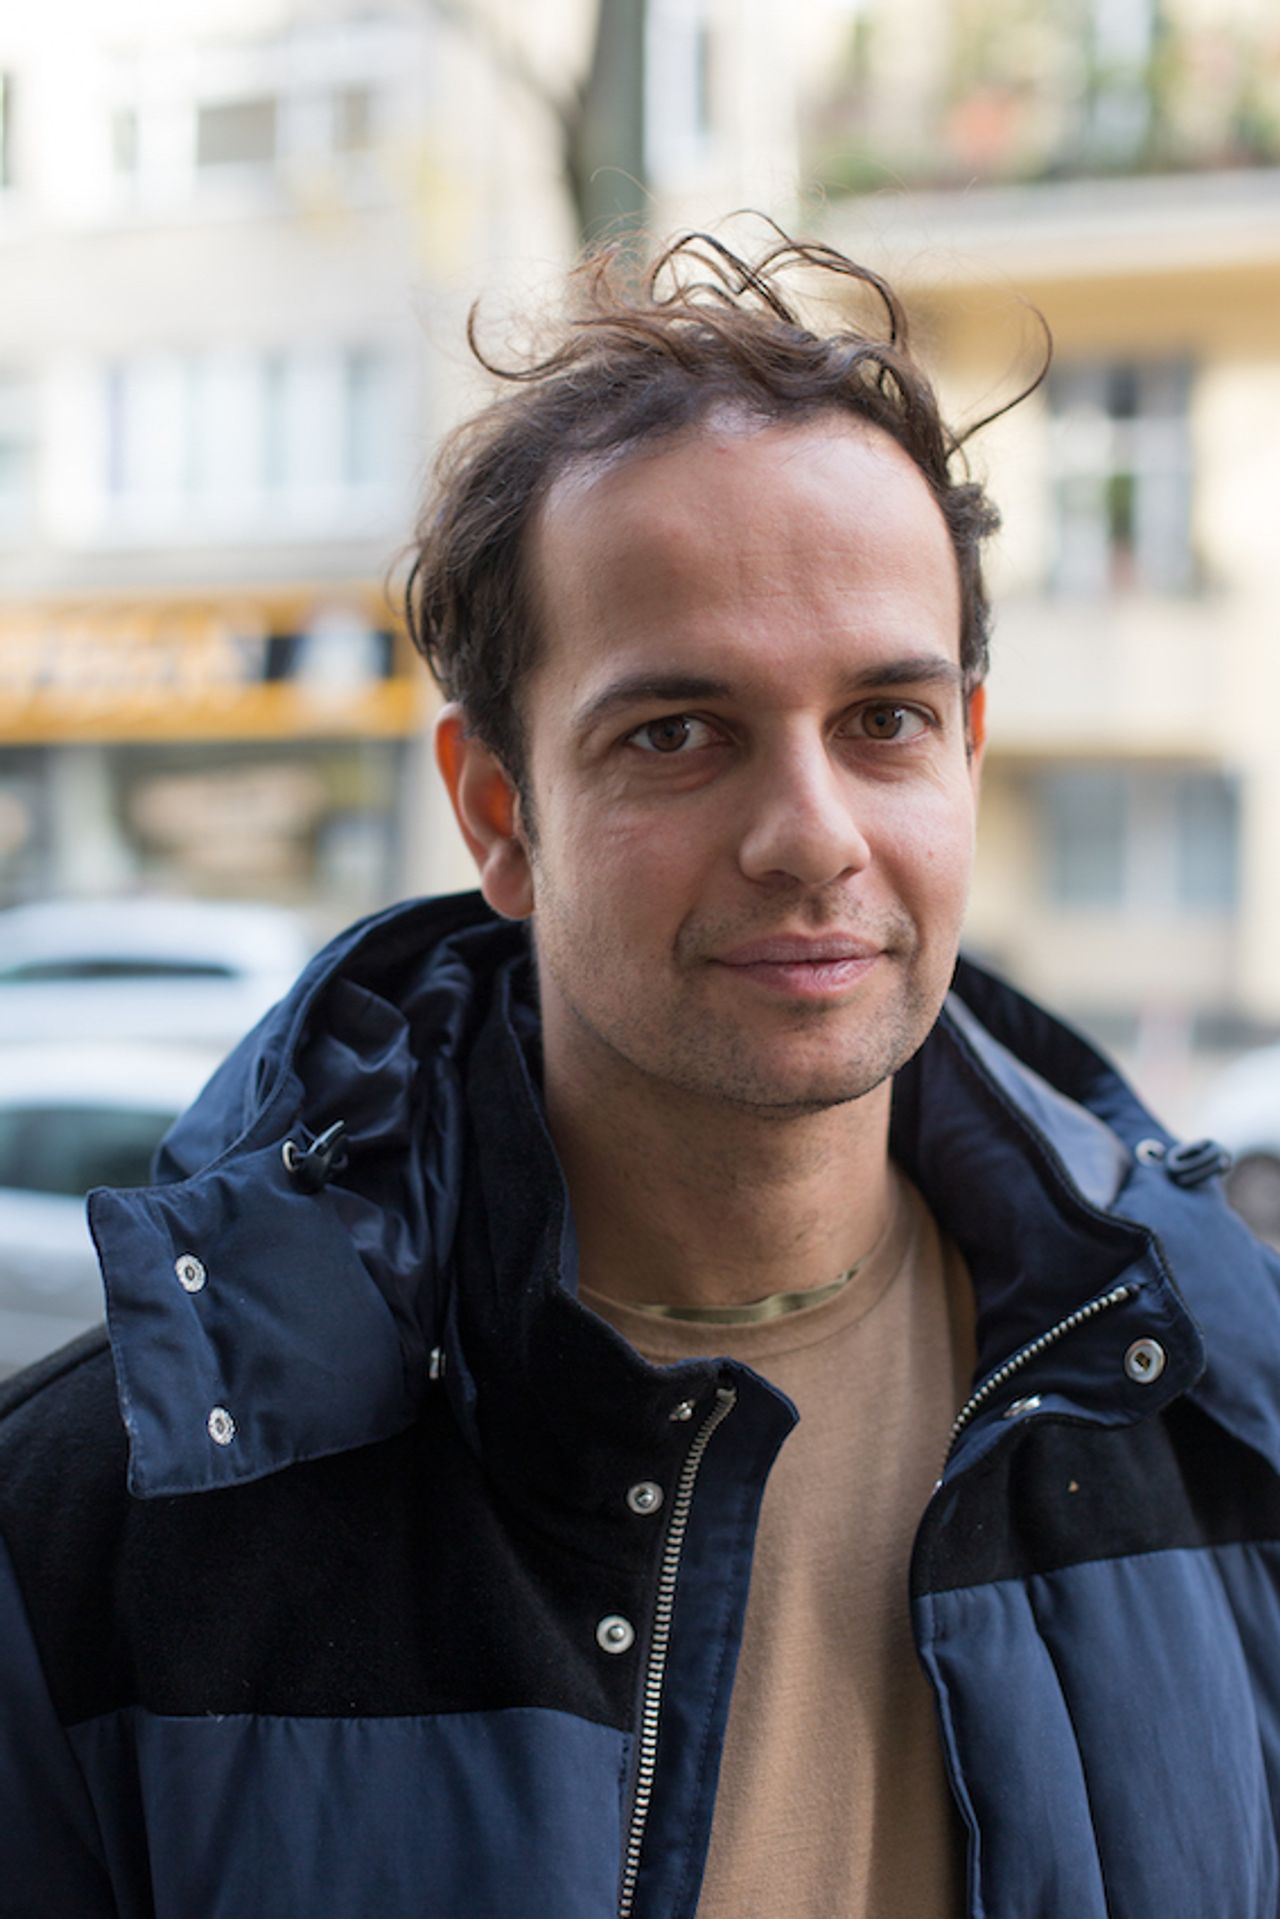 Tino Sehgal will be the eighth contemporary artist to show at Blenheim Palace Photo: Wolfgang Tillmans